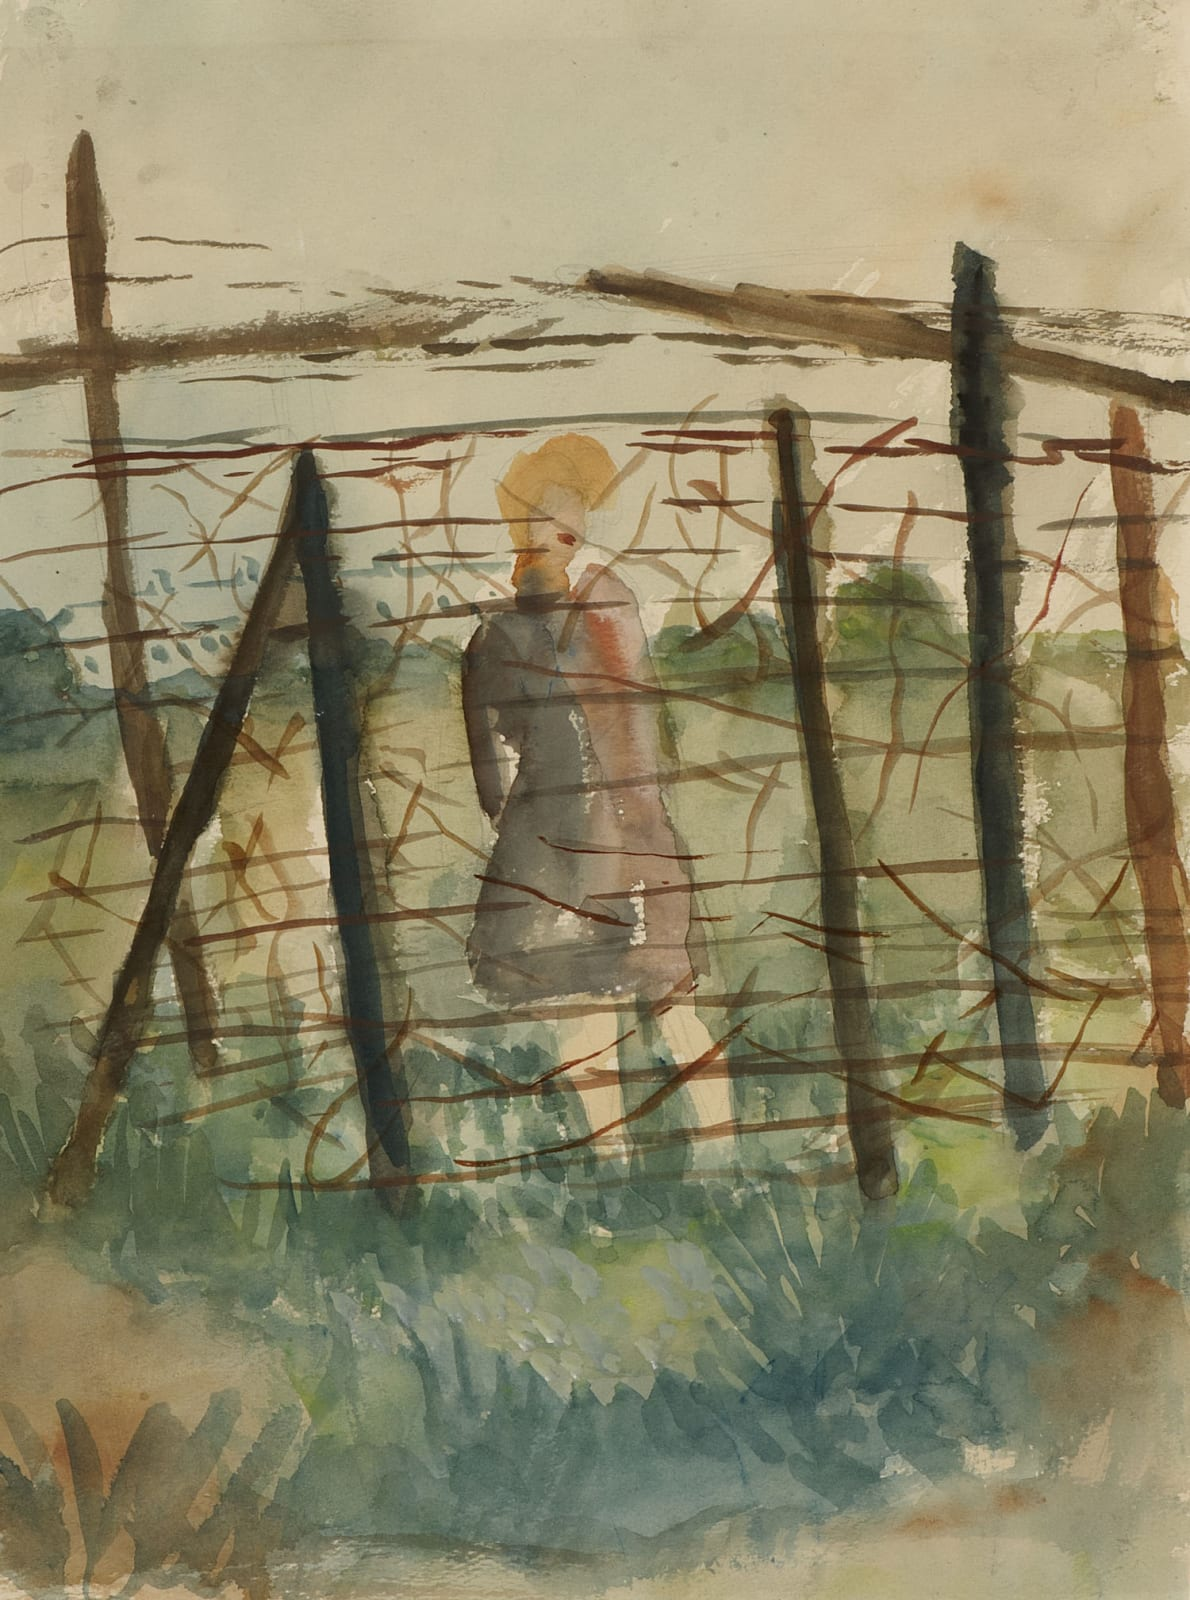 Alfred Lomnitz (1892-1953) Girl Behind Barbed Wire n.d. Watercolour on paper 36.5 x 27 cm Ben Uri Collection © Alfred Lomnitz estate To see and discover more about this artist click here